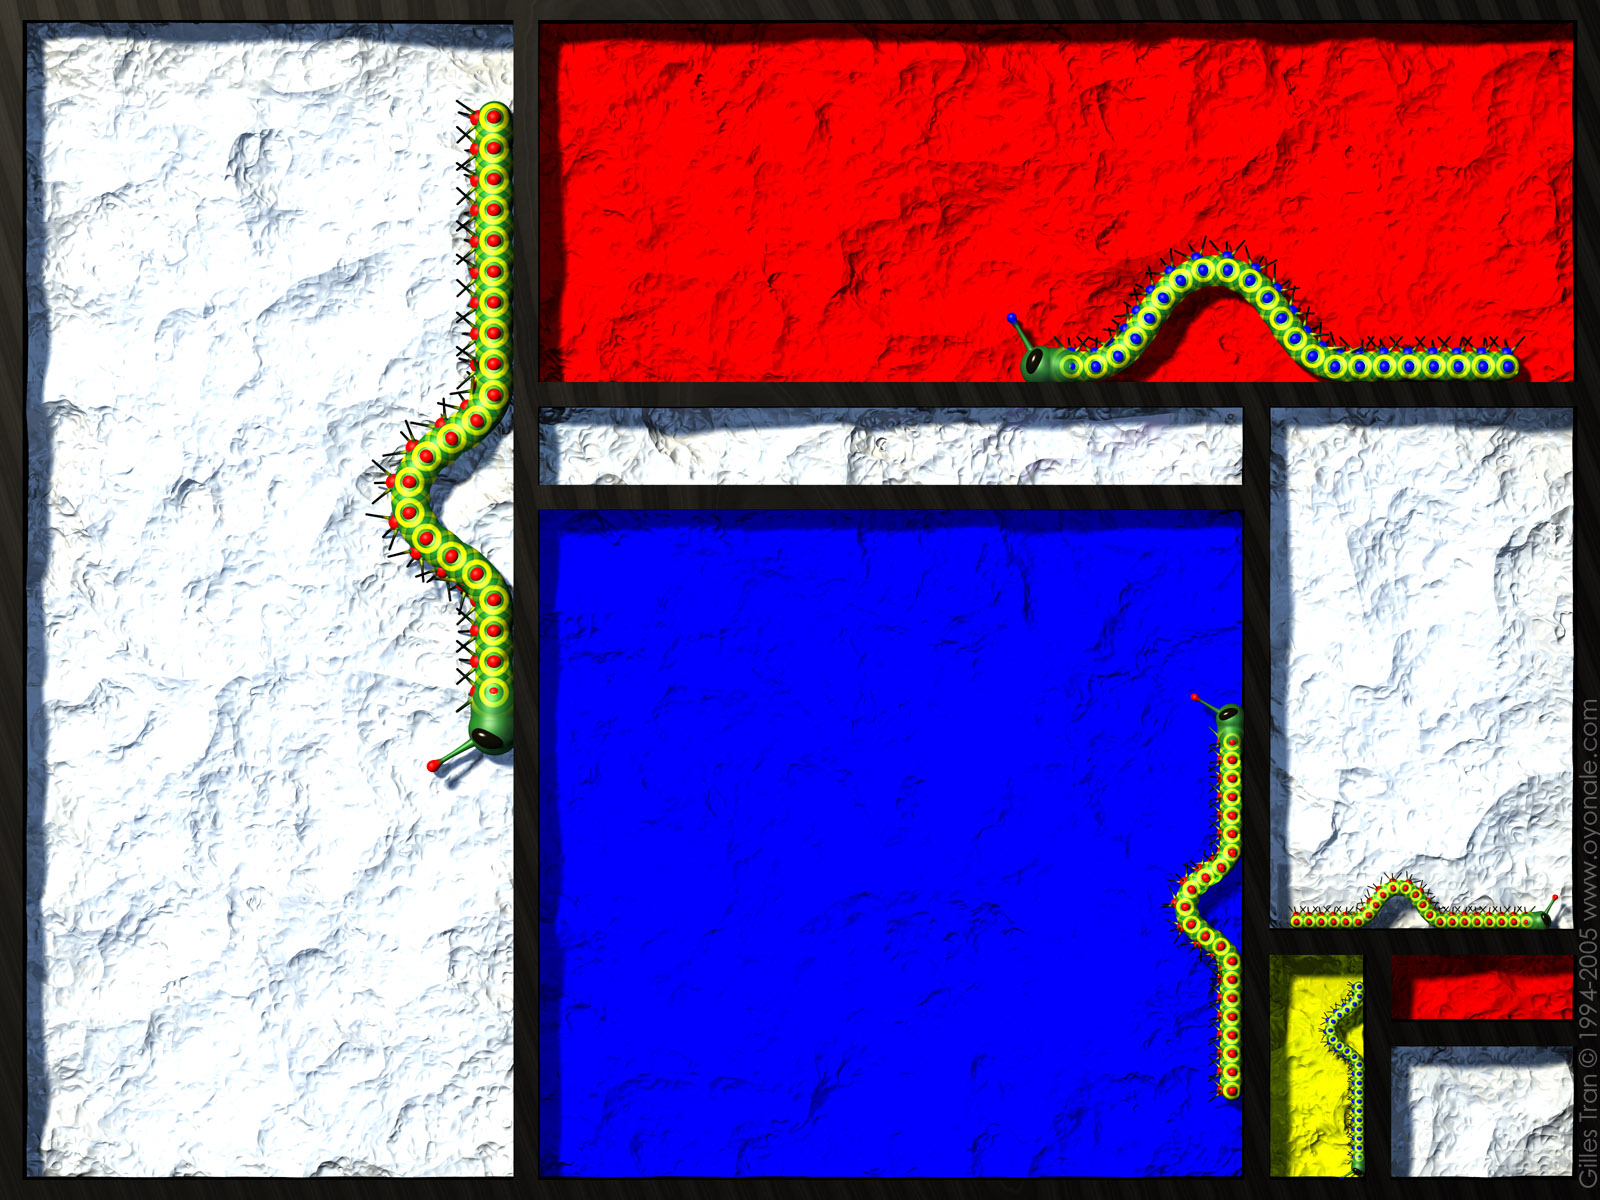 The Mondrian caterpillars